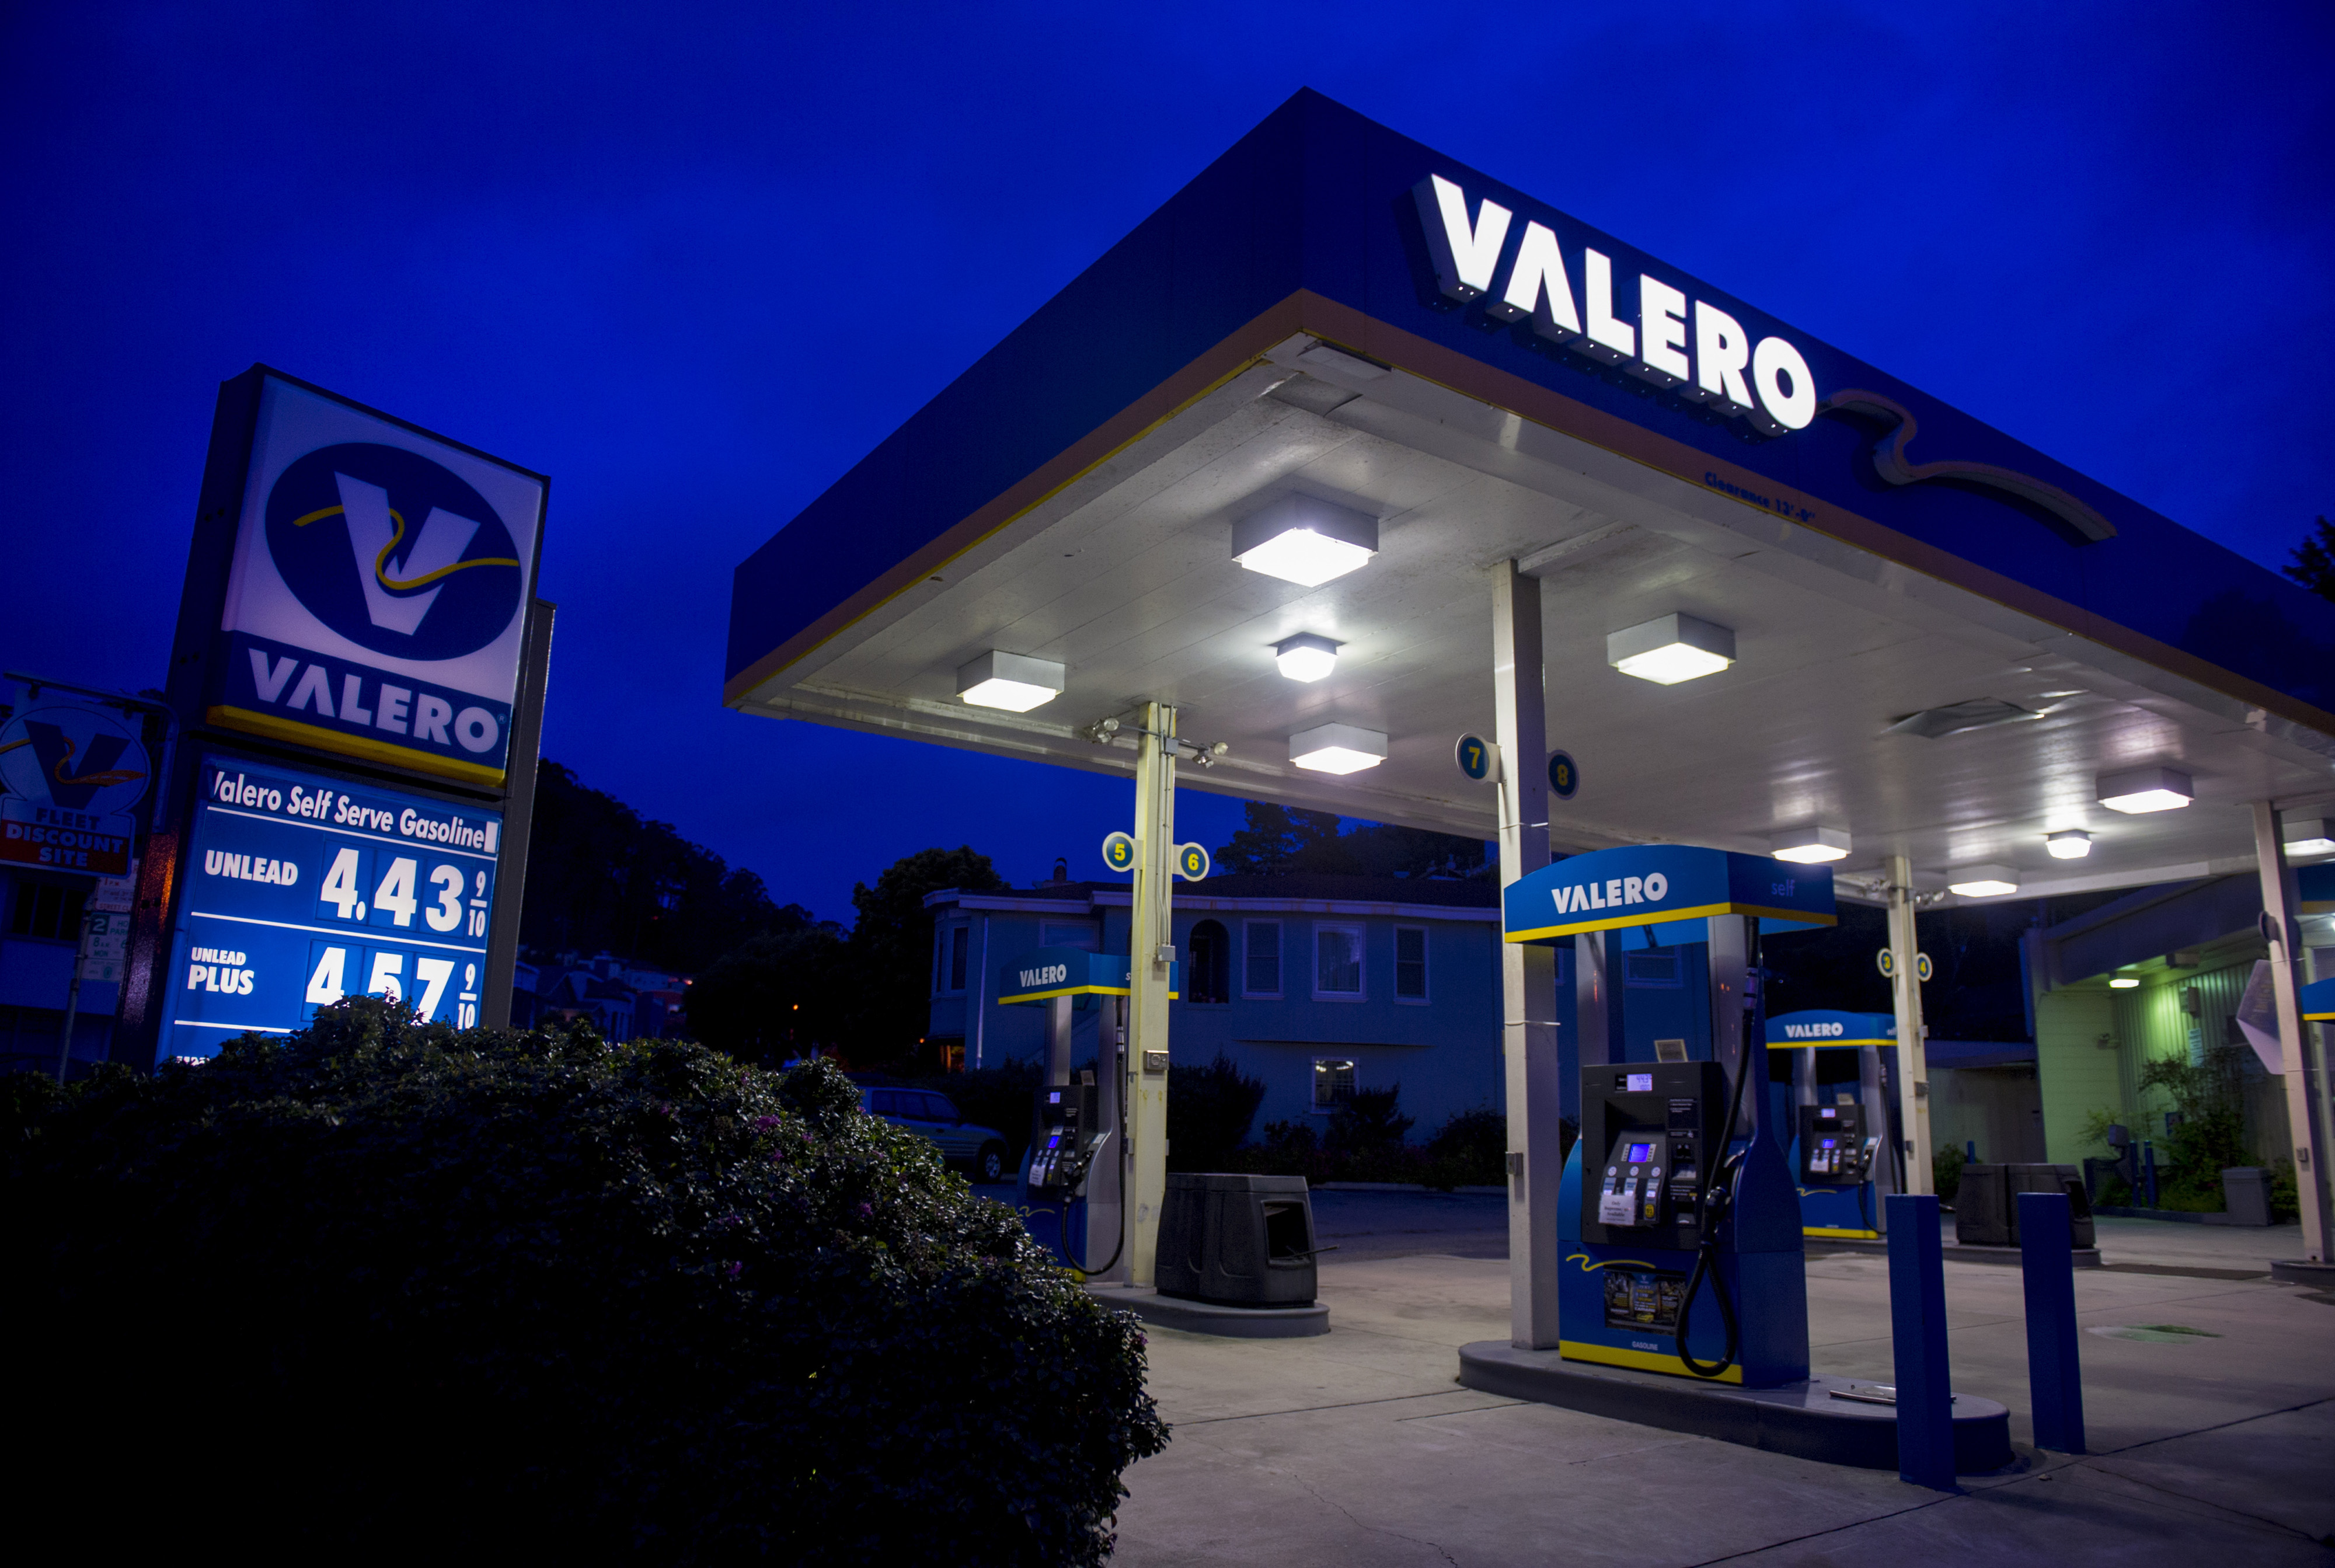 Valero Valero has benefited from increased oil and gas production in North America, and the company has said domestic gasoline demand and margins look positive heading into the summer driving season. This comes after some big changes for the refining giant: Valero completed the spin off of its retail business, CST Brands, last year. And earlier this year, the company named its new CEO, Joe Gorder, who was previously the company's chief operating officer.